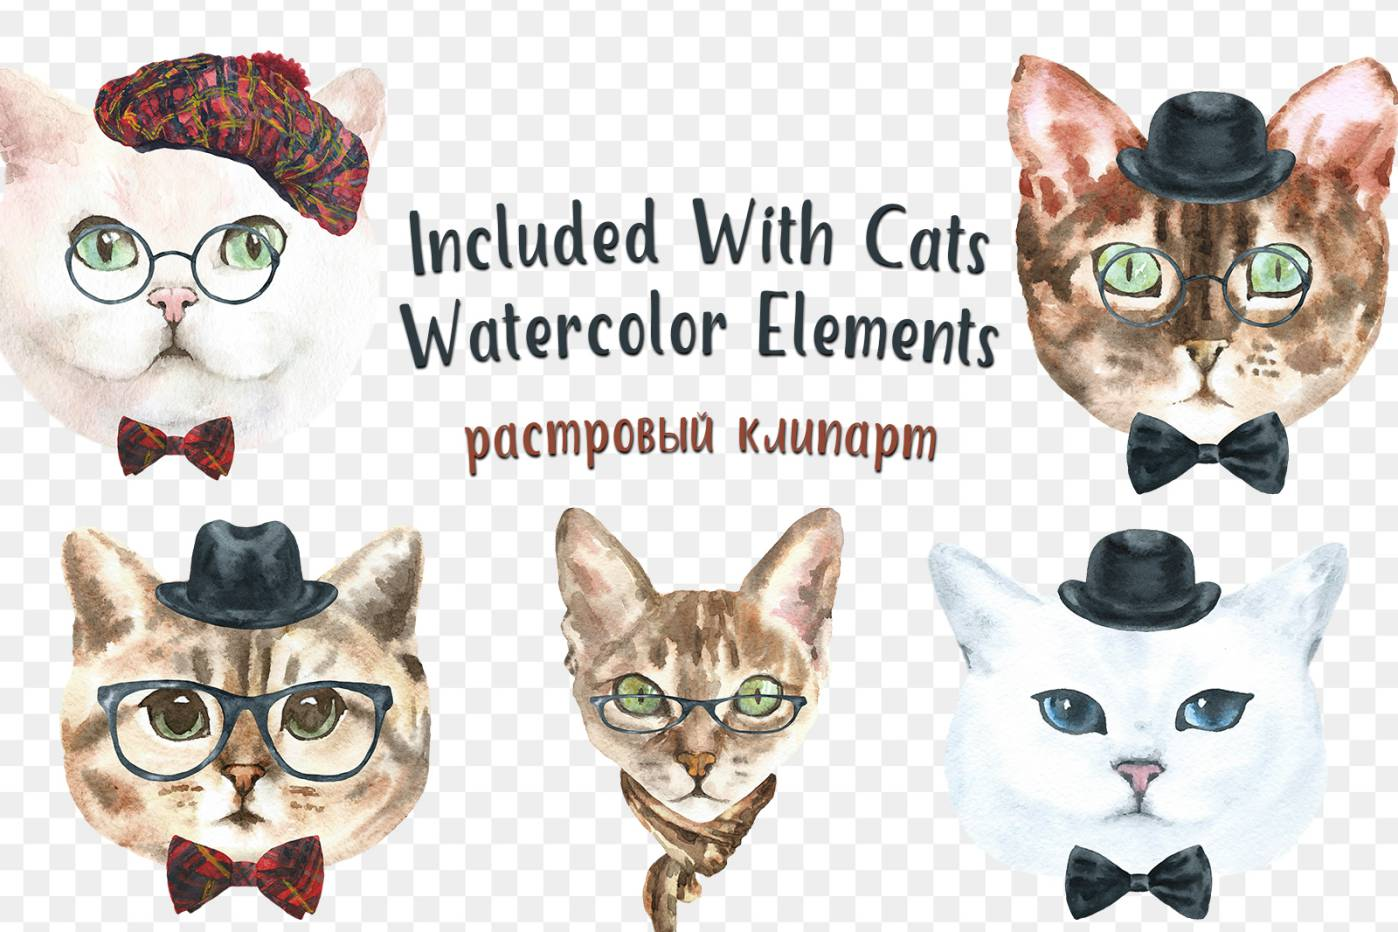 Free Cats Watercolor Elements png